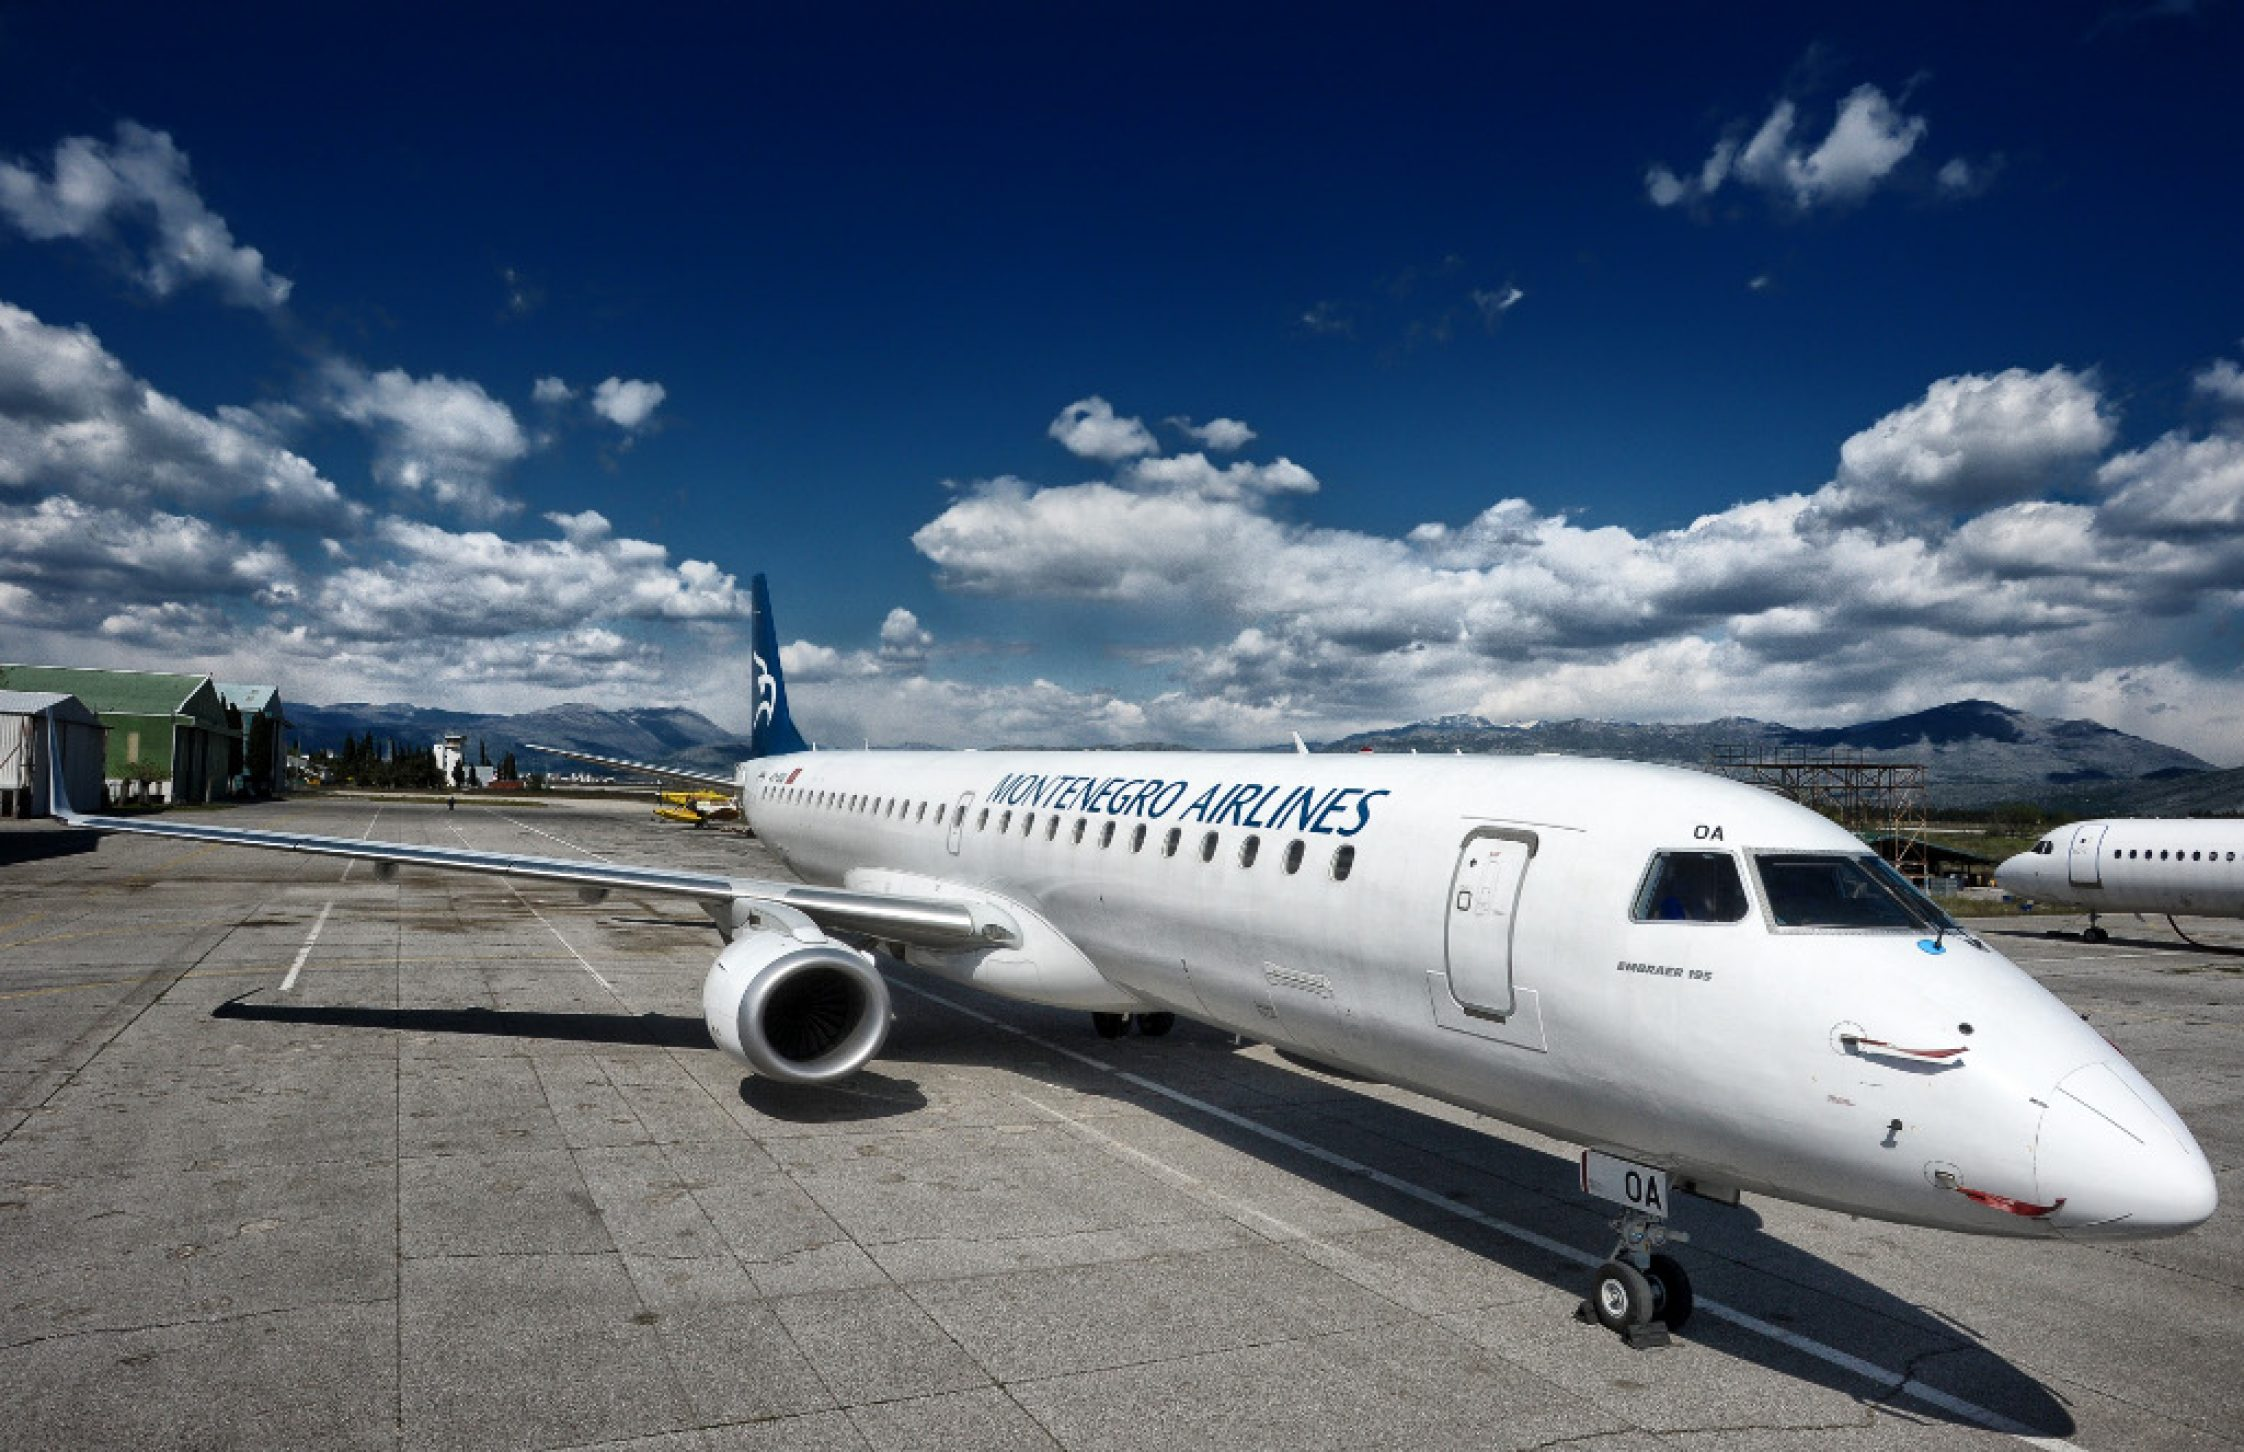 montenegro-airlines-reviews-montenegro-airlines-airplane-2244x1452